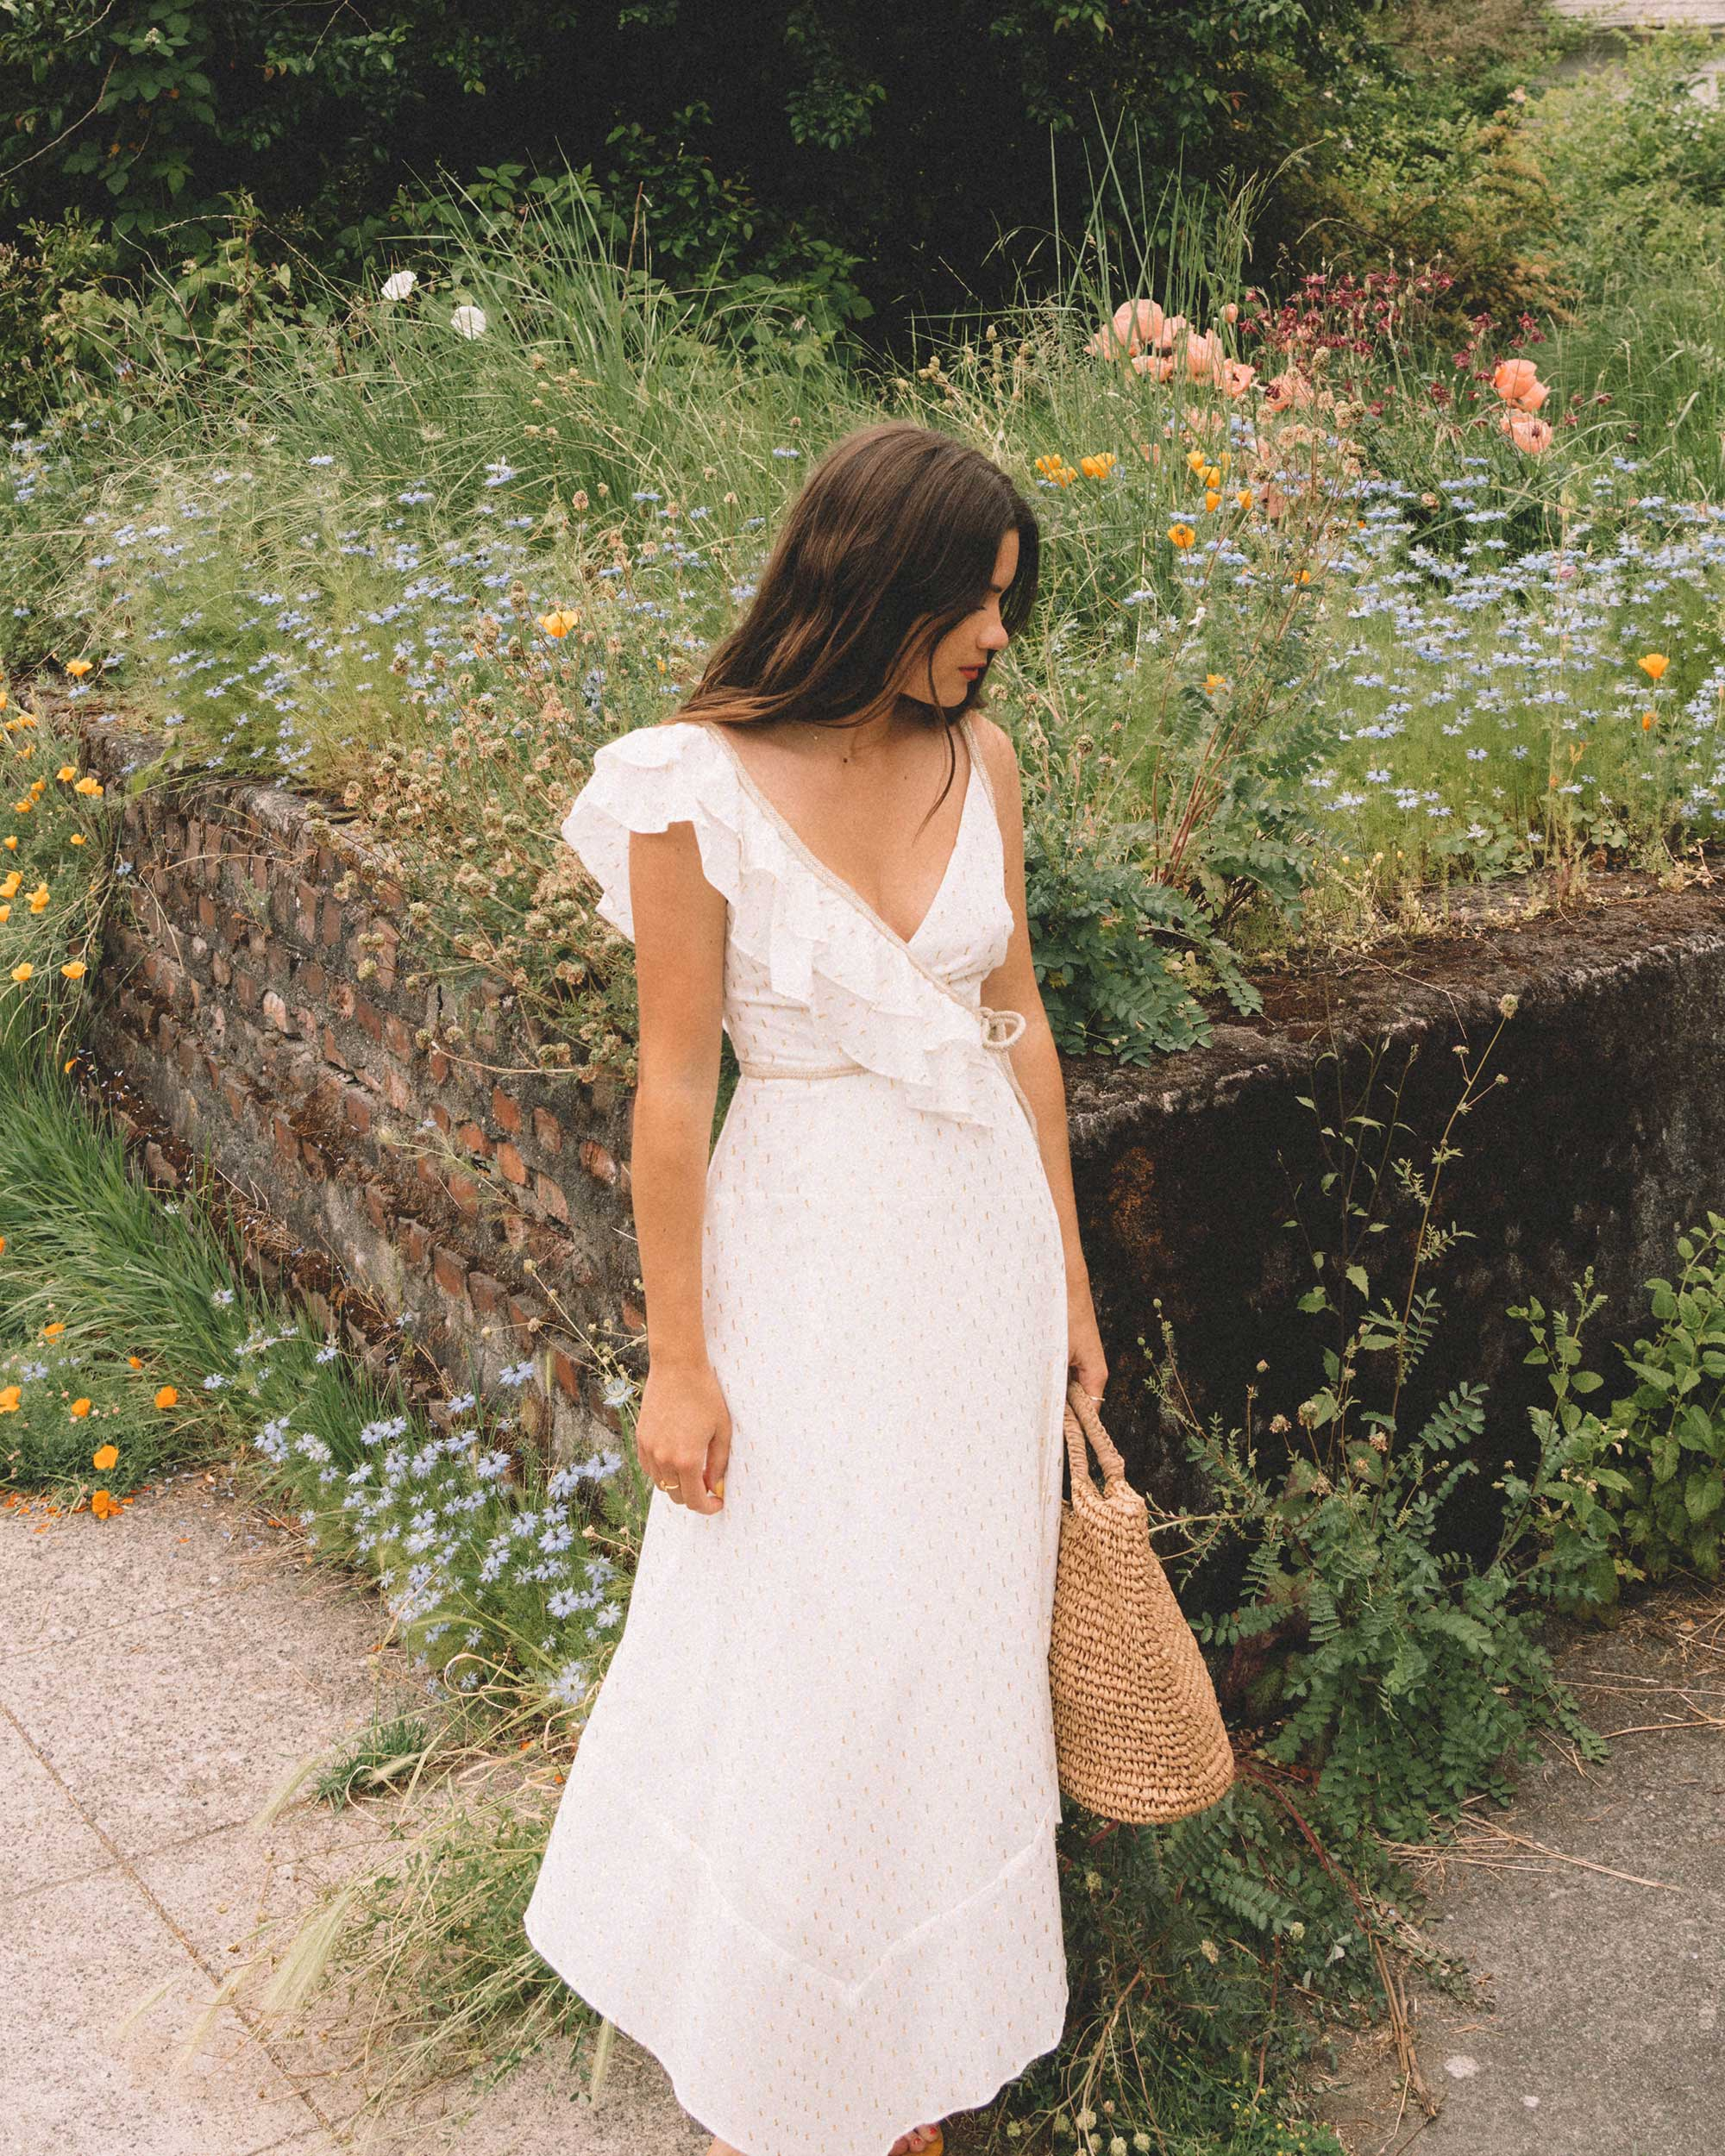 Sarah Butler of Sarah Styles Seattle wears BCBGMAXAZRIA White Asymmetric Midi Wrap Dress for the perfect summer outfit dress | @sarahchristine.jpg